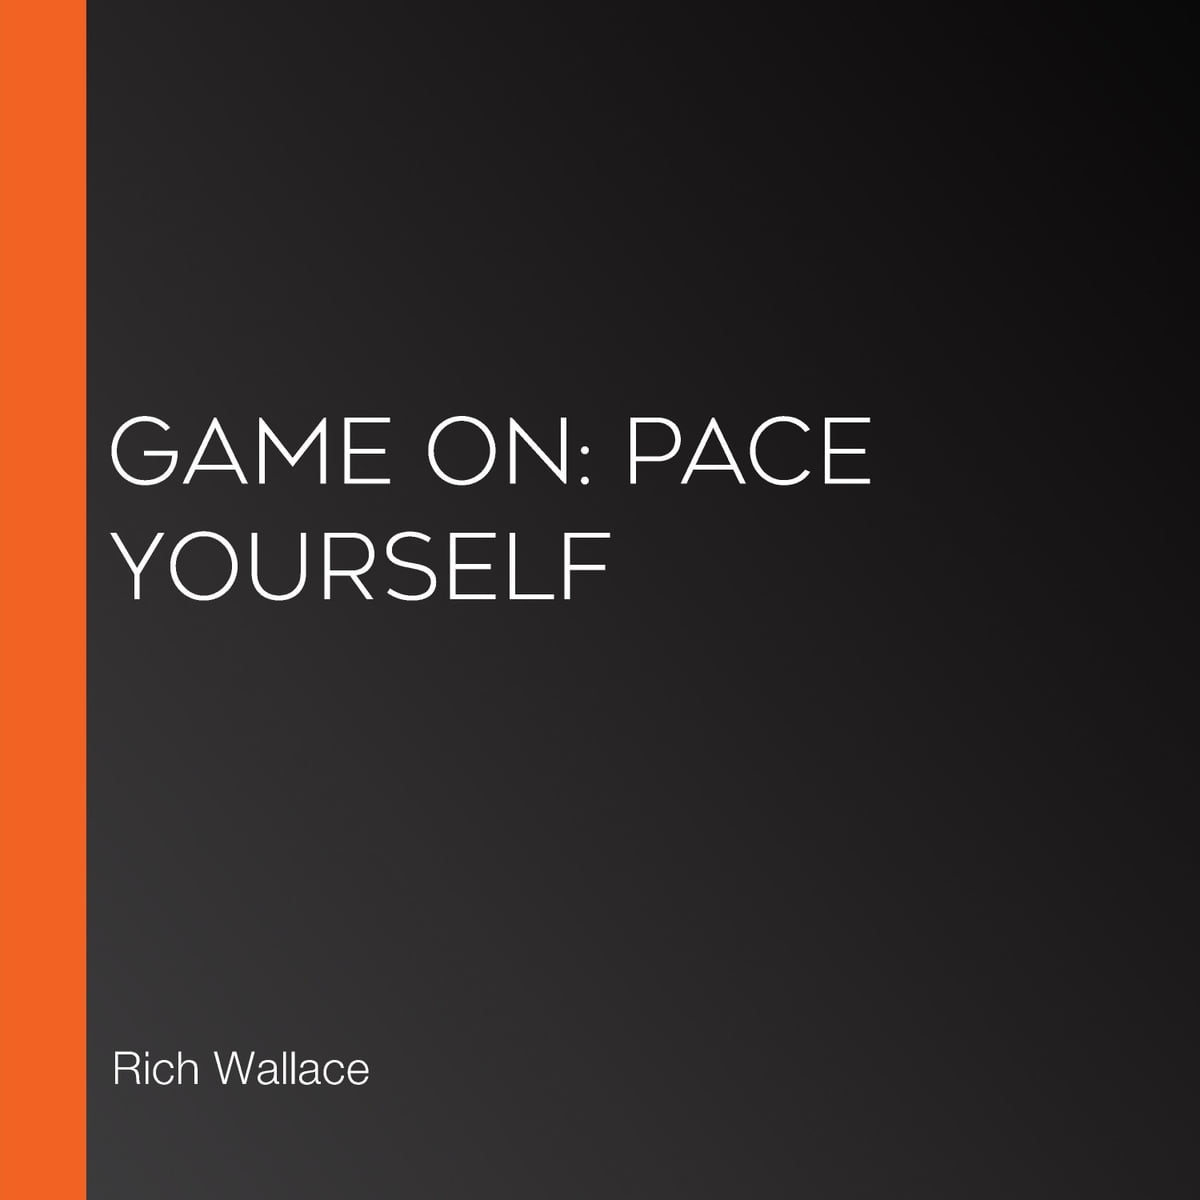 Game On Pace Yourself Audiobook By Rich Wallace 9781792211737 Rakuten Kobo United States